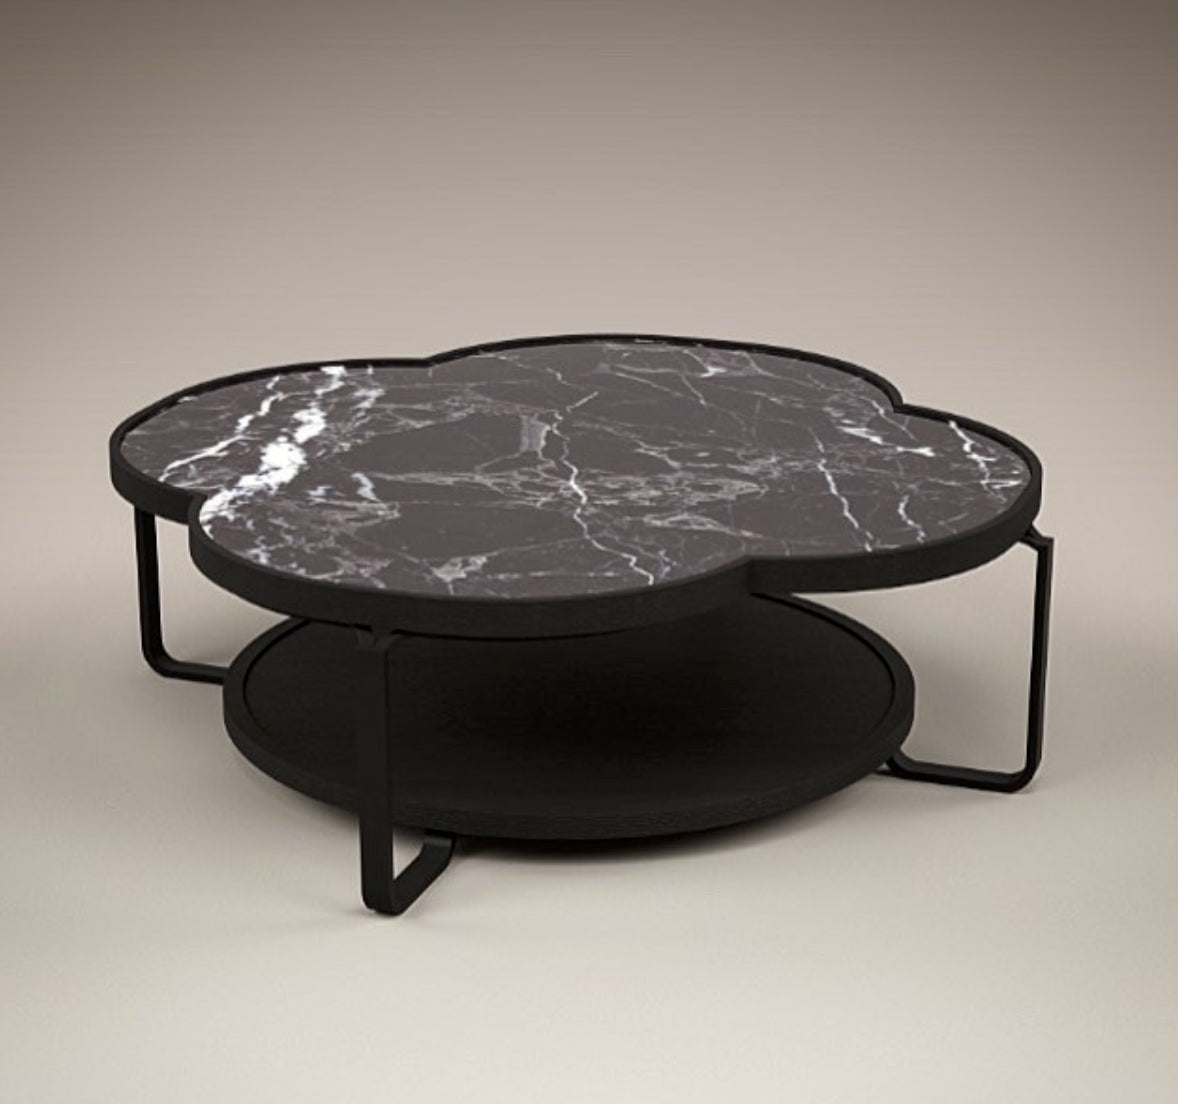 prune coffee table, marble coffee table, Nero Marquina, marble veins, clover design, four leaf, steel coffee table, oak coffee table, two layer coffee table, akar de Nissim, luxury furniture, designer furniture, minimalist, bespoke furniture, prune, Sabin,